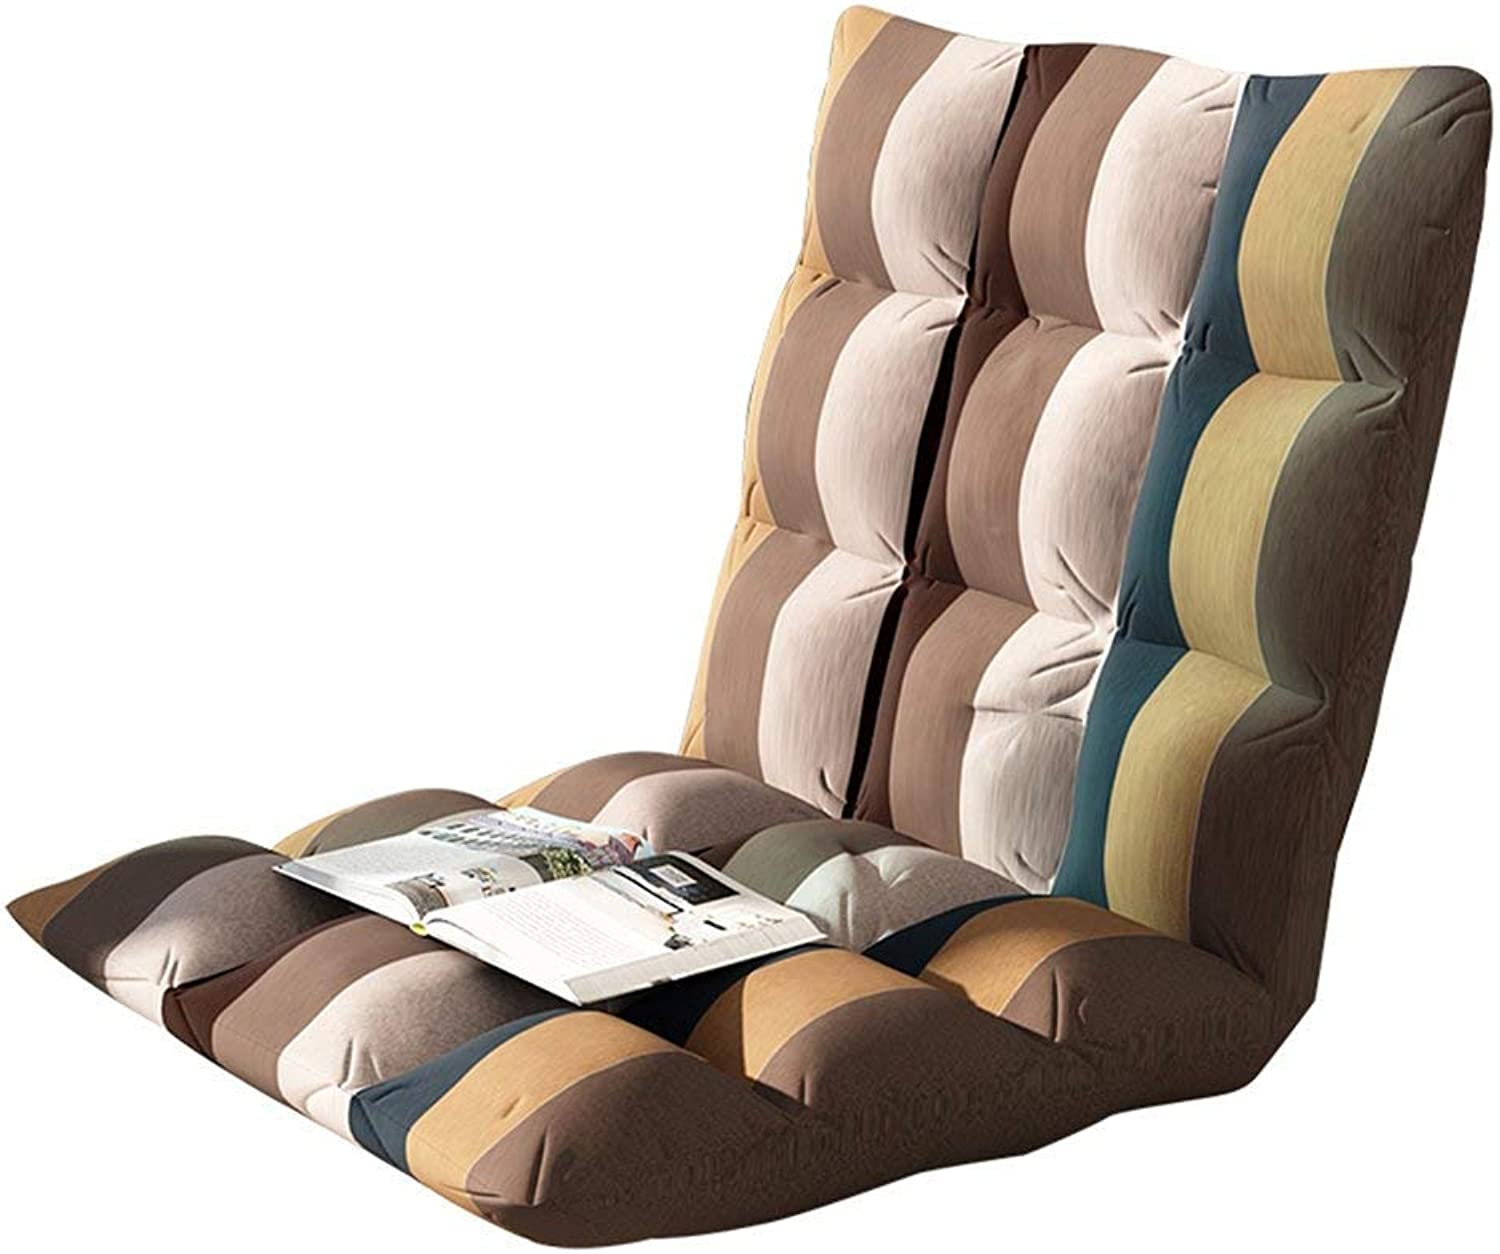 Lazy Sofa Cushion Folding Chair Bed Chair Bay Window Chair Lazy Couch (color  A, Size  78  40  10cm)